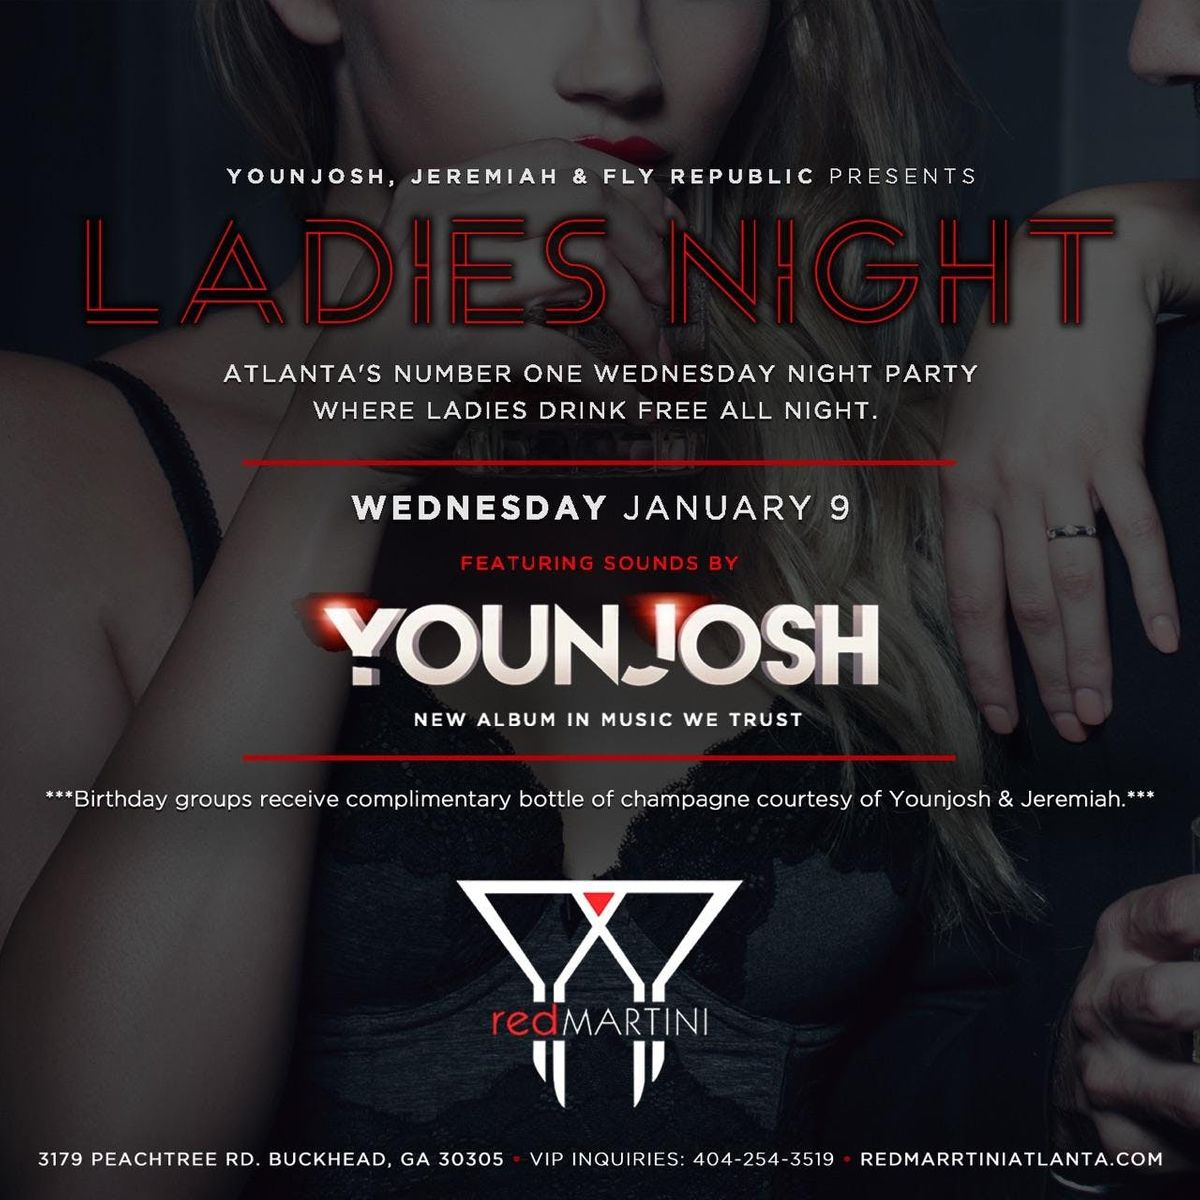 Atlantas 1 Ladies Night Party No Cover All Night For Everybody  Open Bar All Night For Ladies w Rsvp